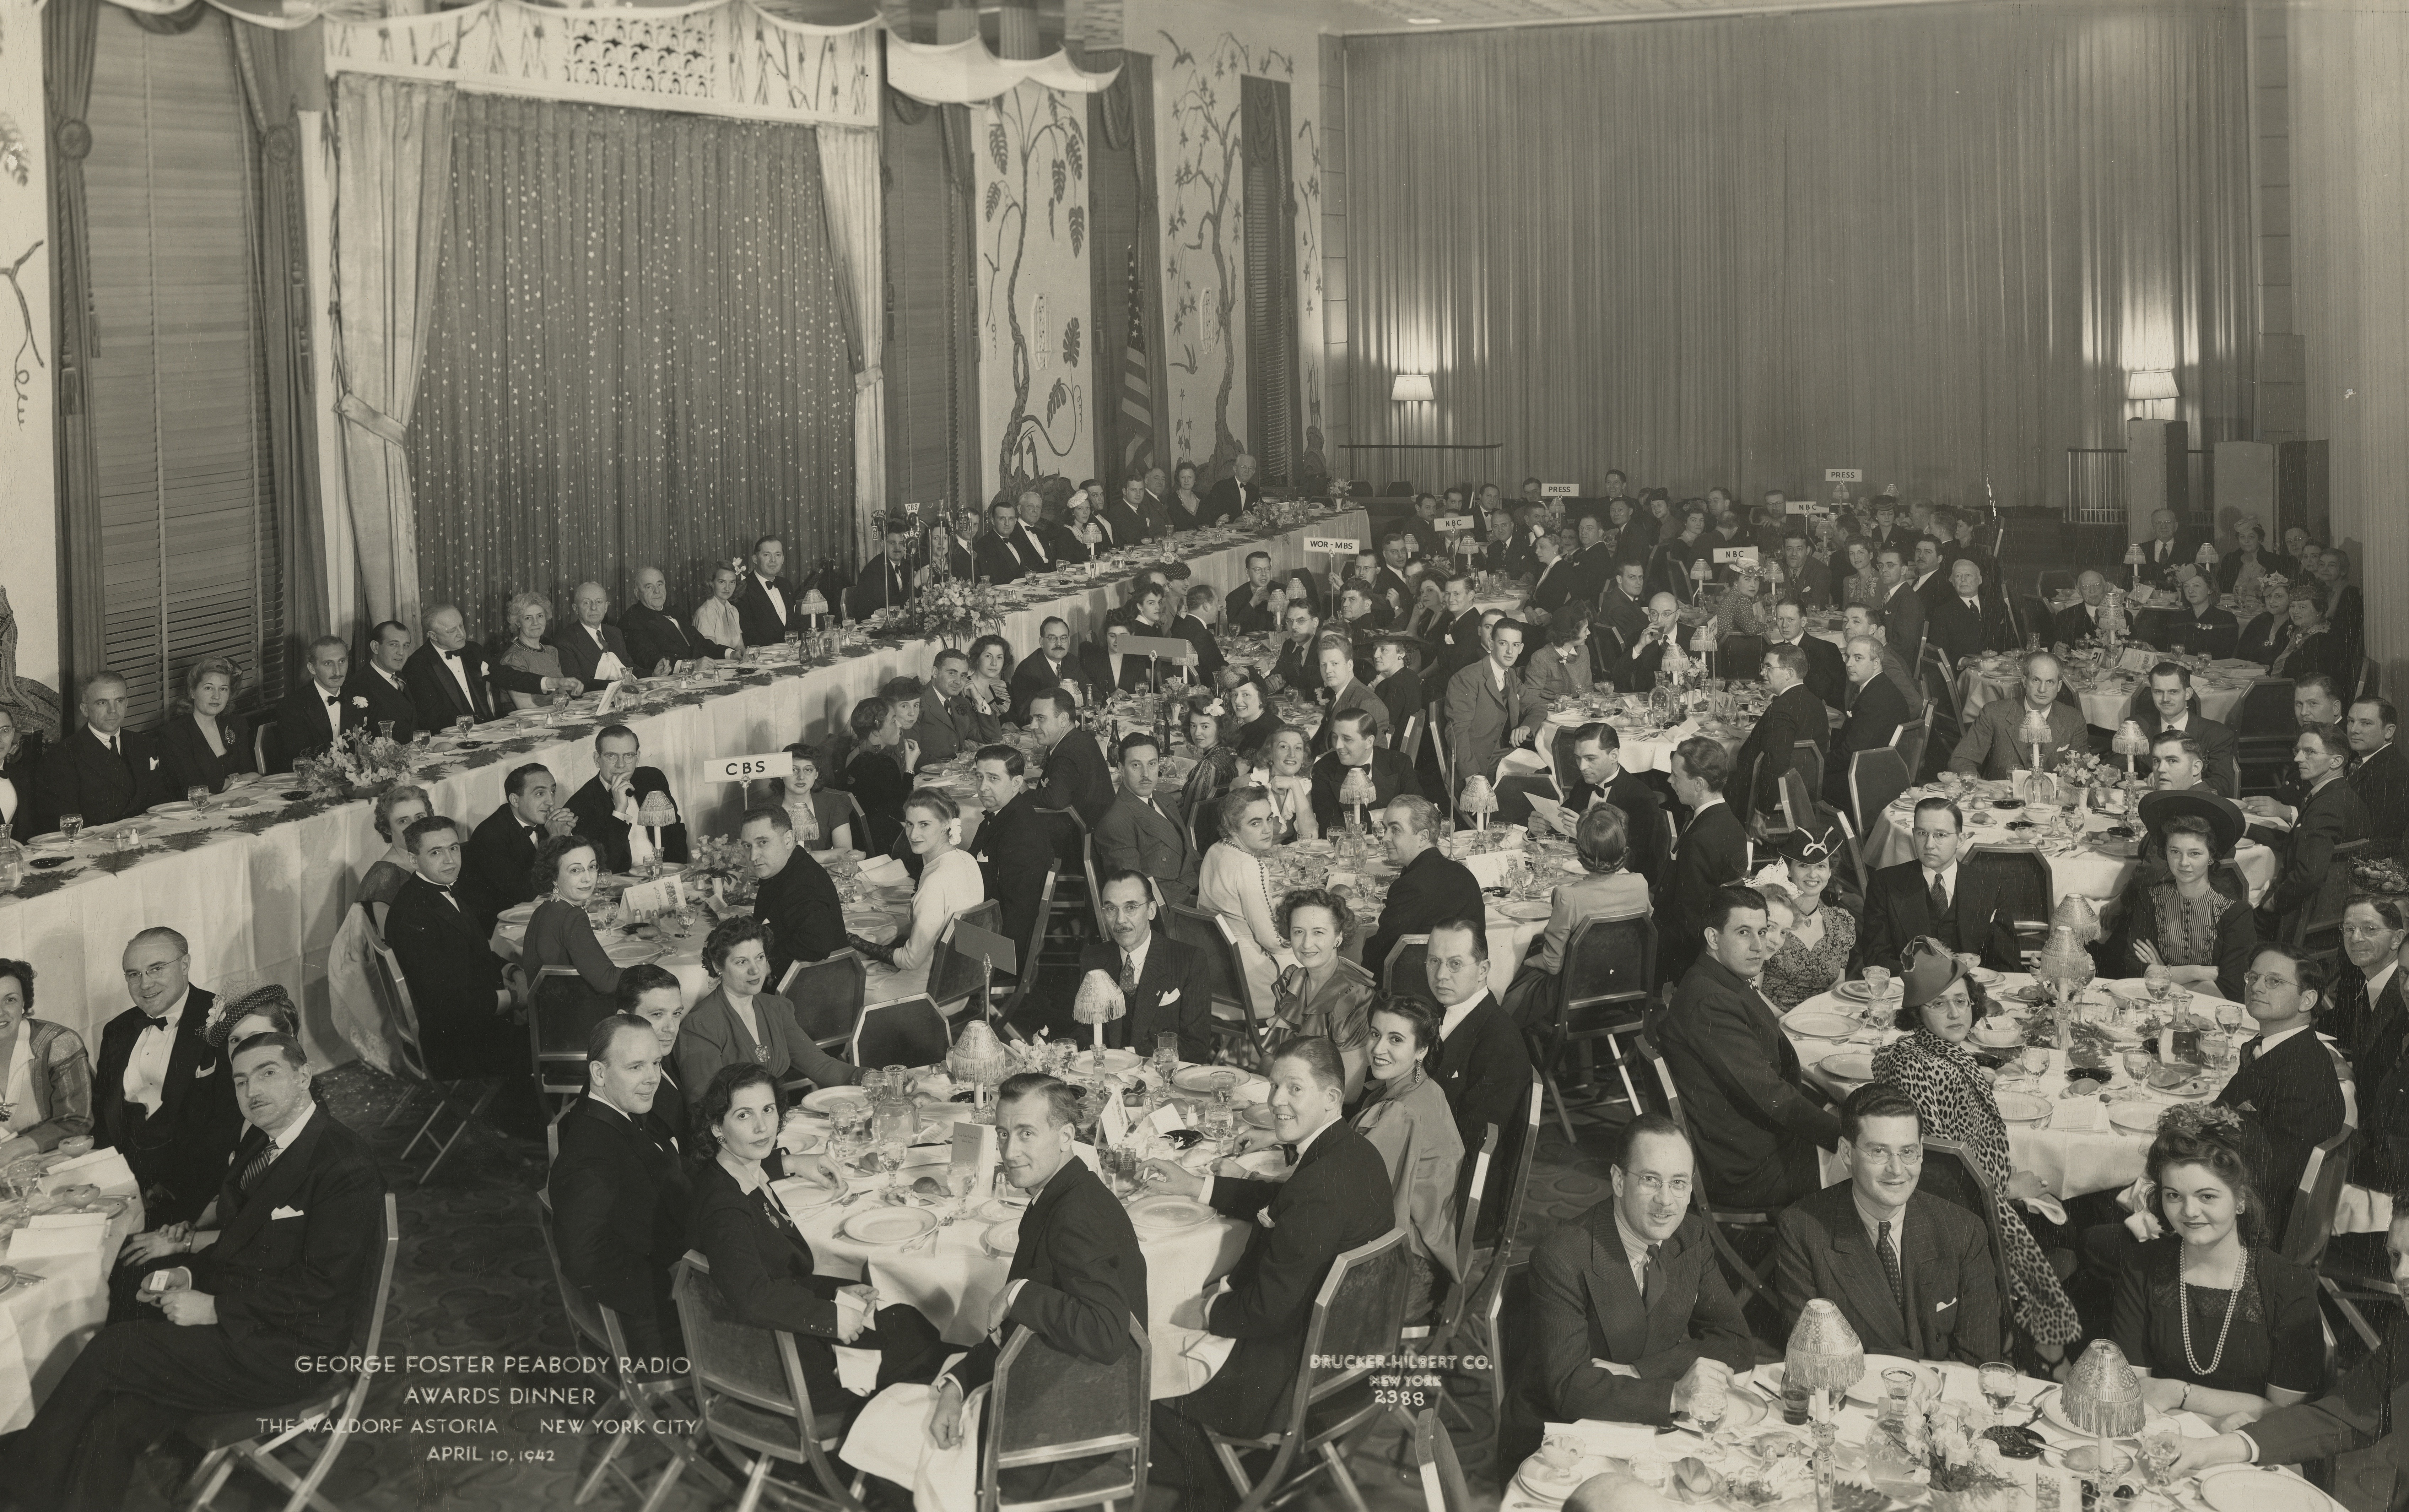 George Foster Peabody Radio Awards Dinner, April 10, 1942, George Foster Peabody Awards records, ms3000, Hargrett Rare Book and Manuscript Library, University of Georgia Libraries.